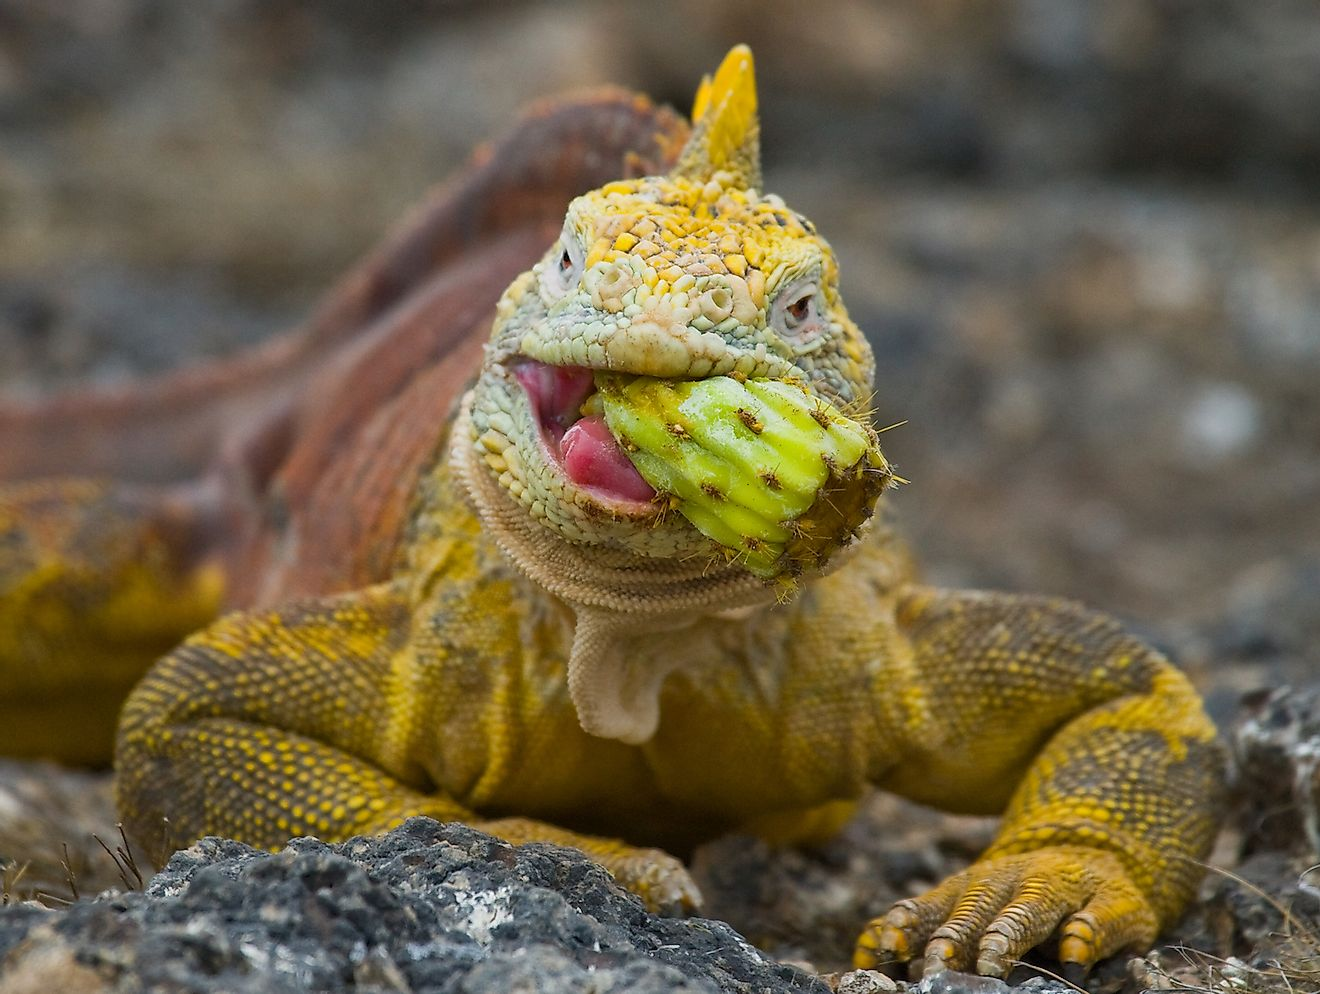 The land iguana eating a prickly pear cactus in Galapagos Islands. Image credit: GUDKOV ANDREY/Shutterstock.com